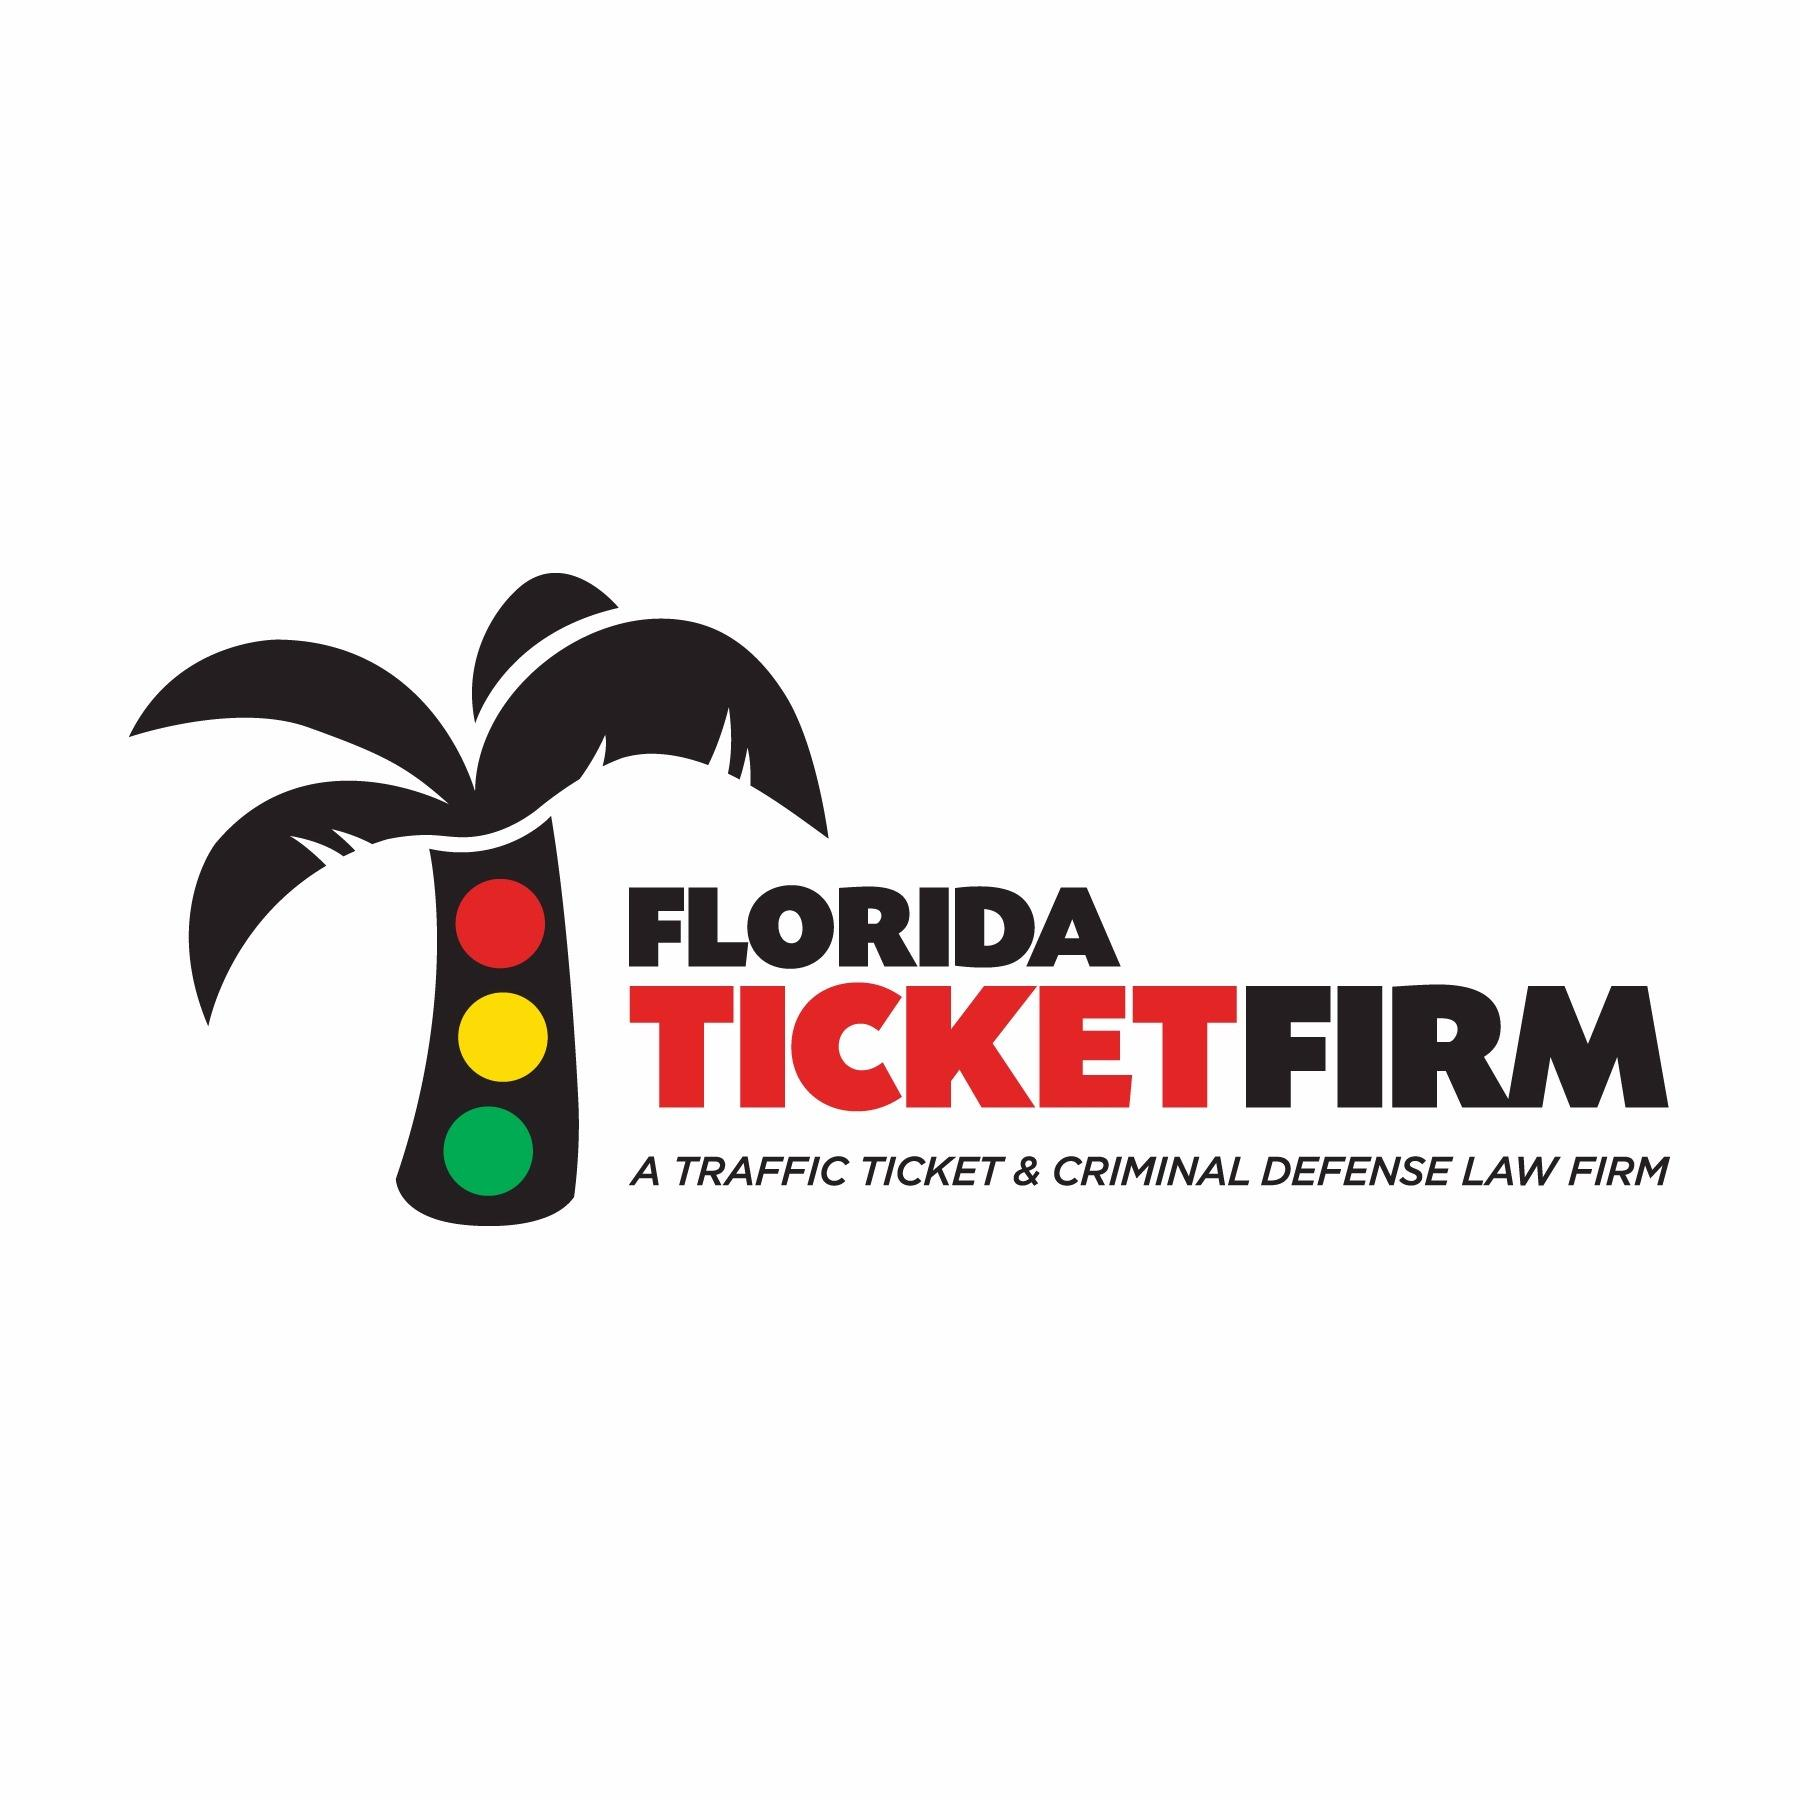 photo of Florida Ticket Firm